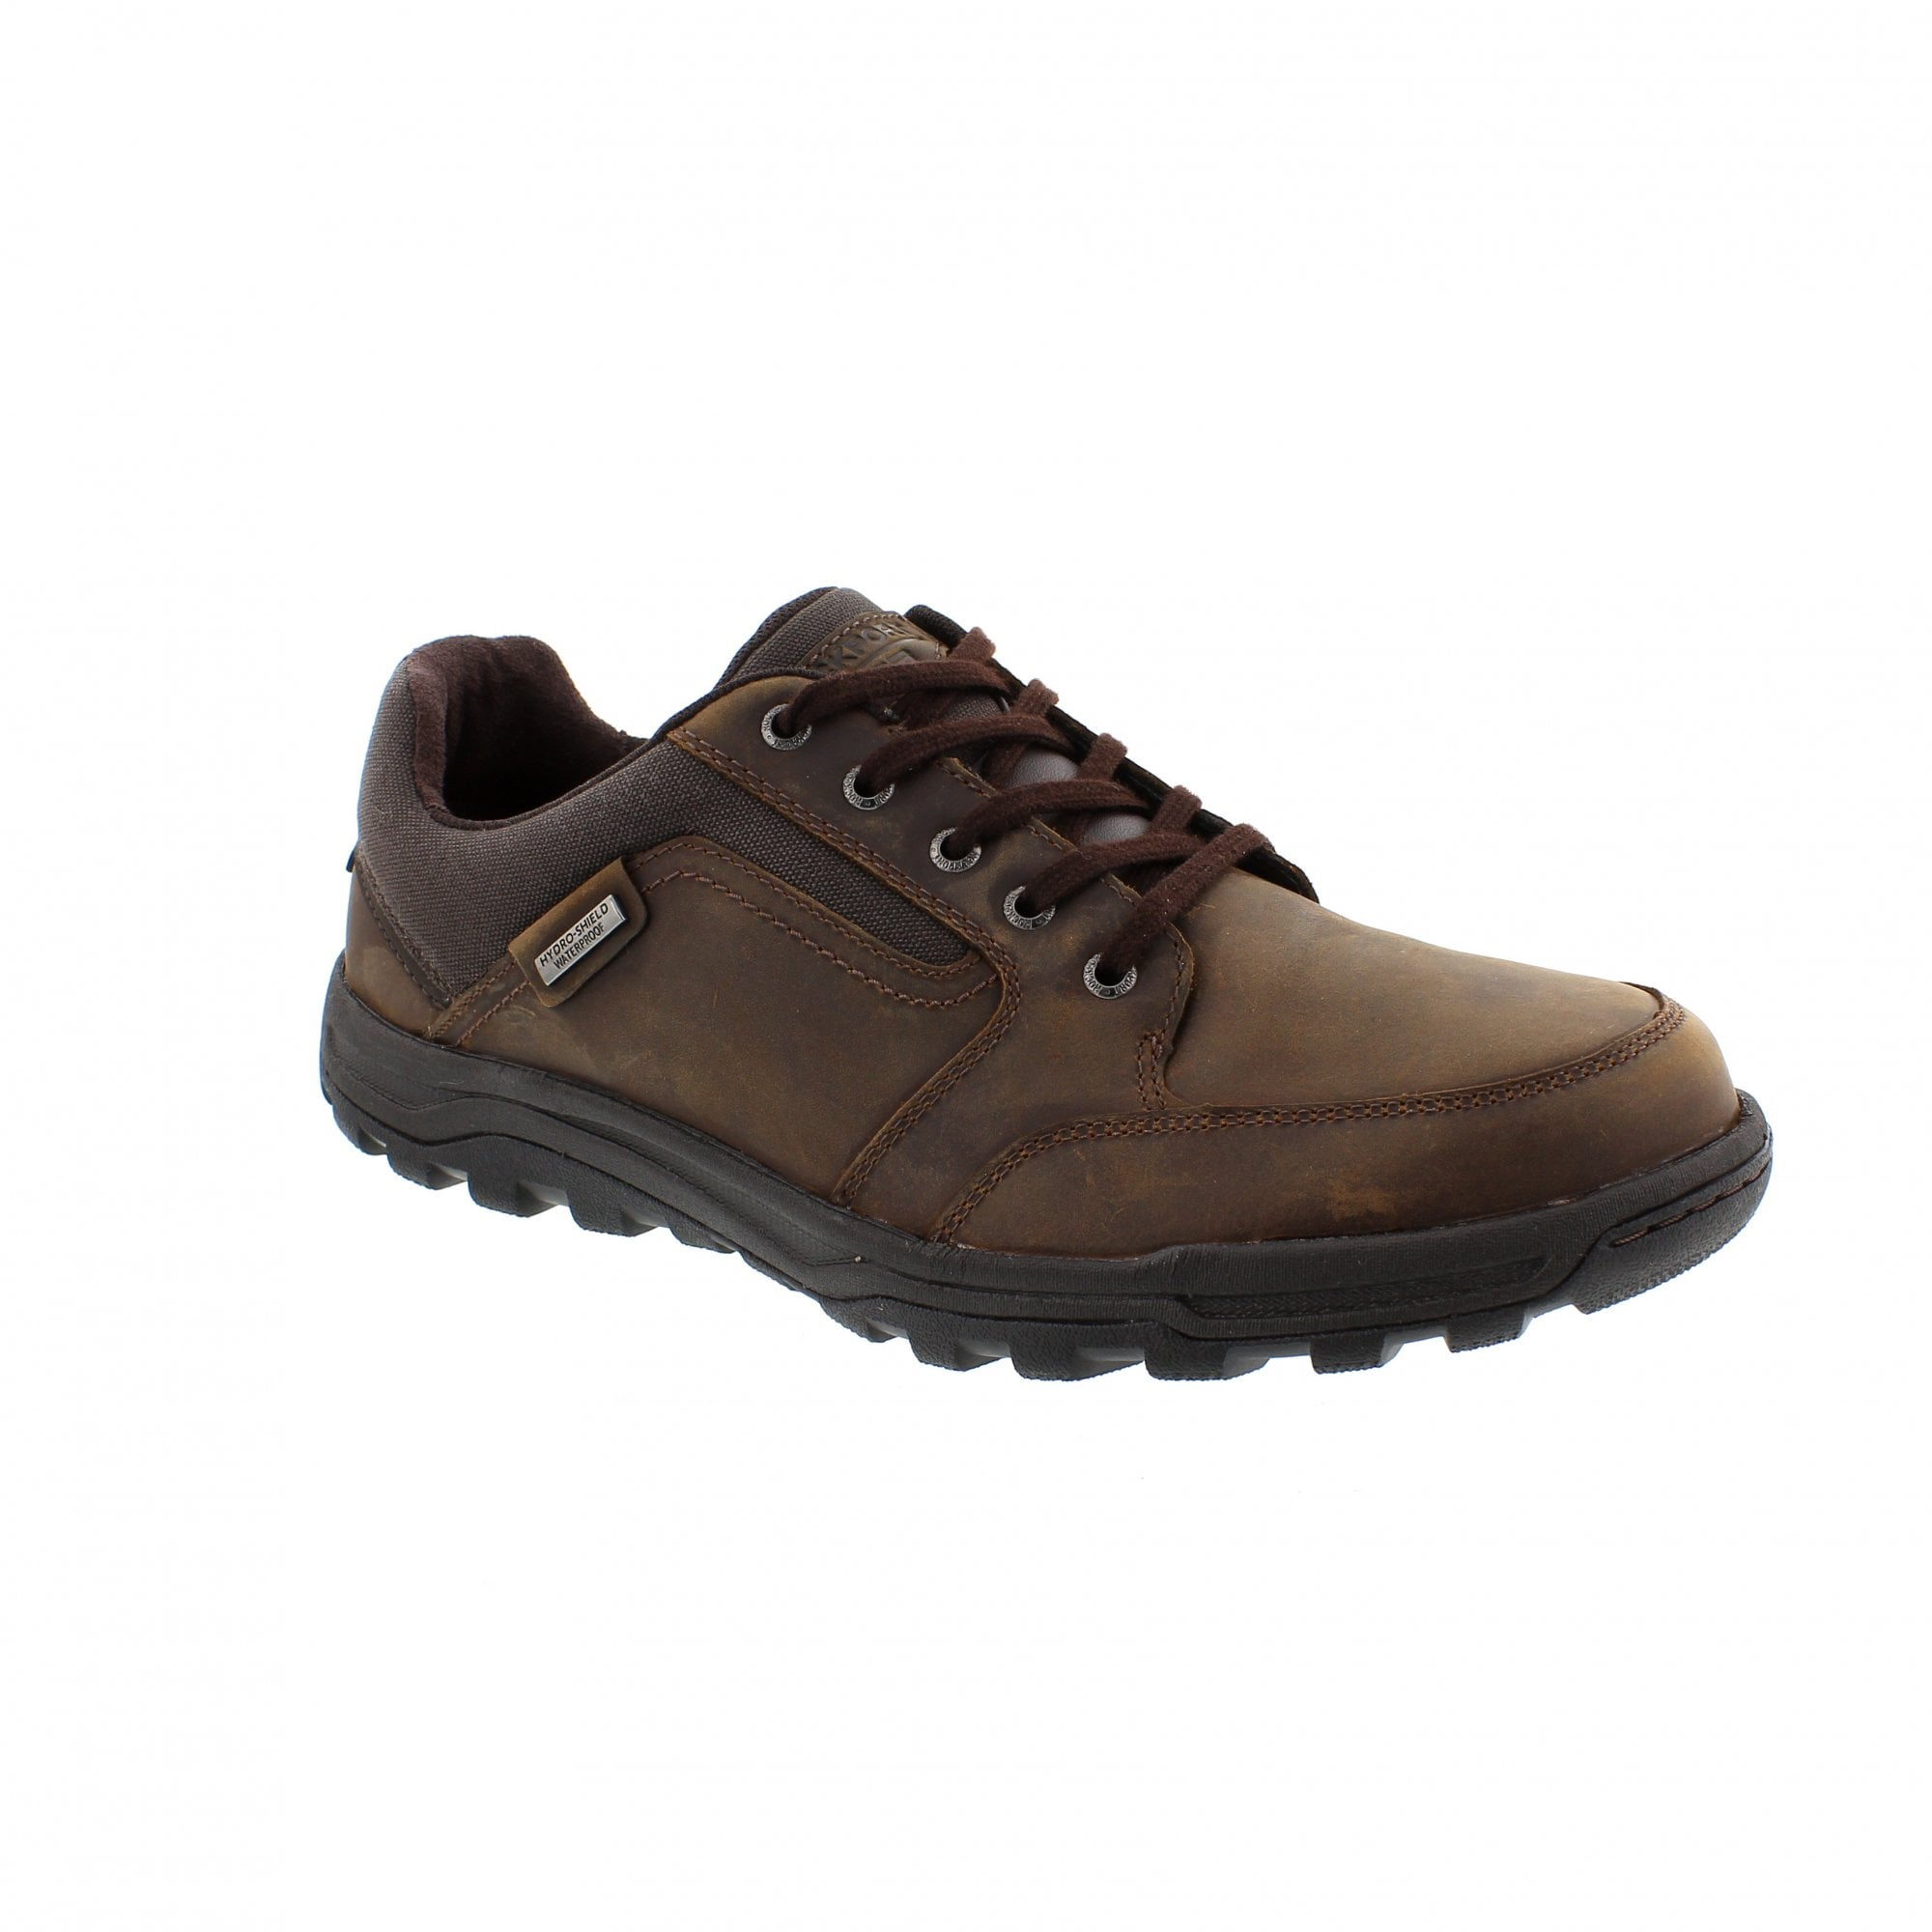 Rockport Harlee Lace To Toe CH4986 Mens